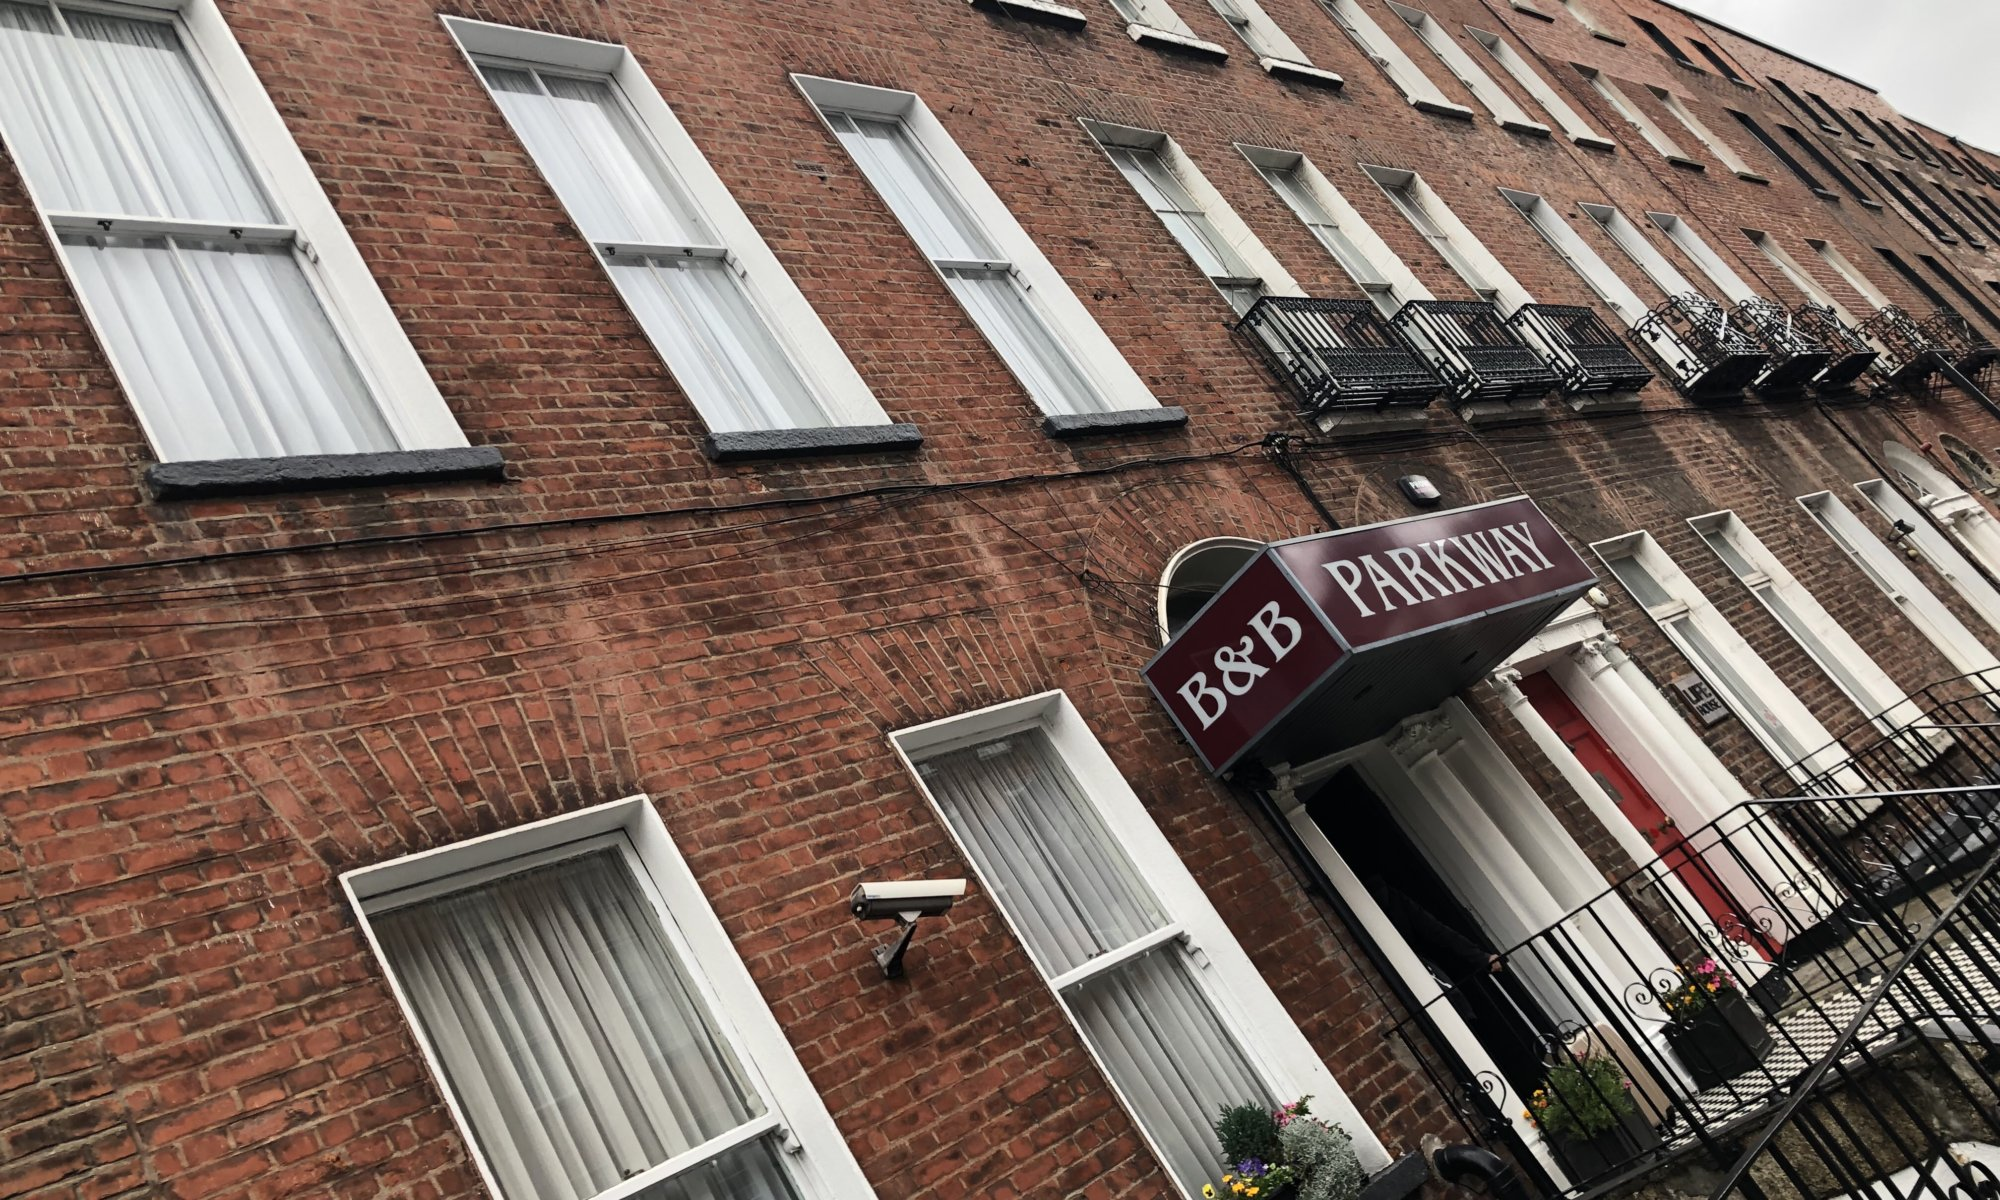 Parkway guesthouse, Dublin